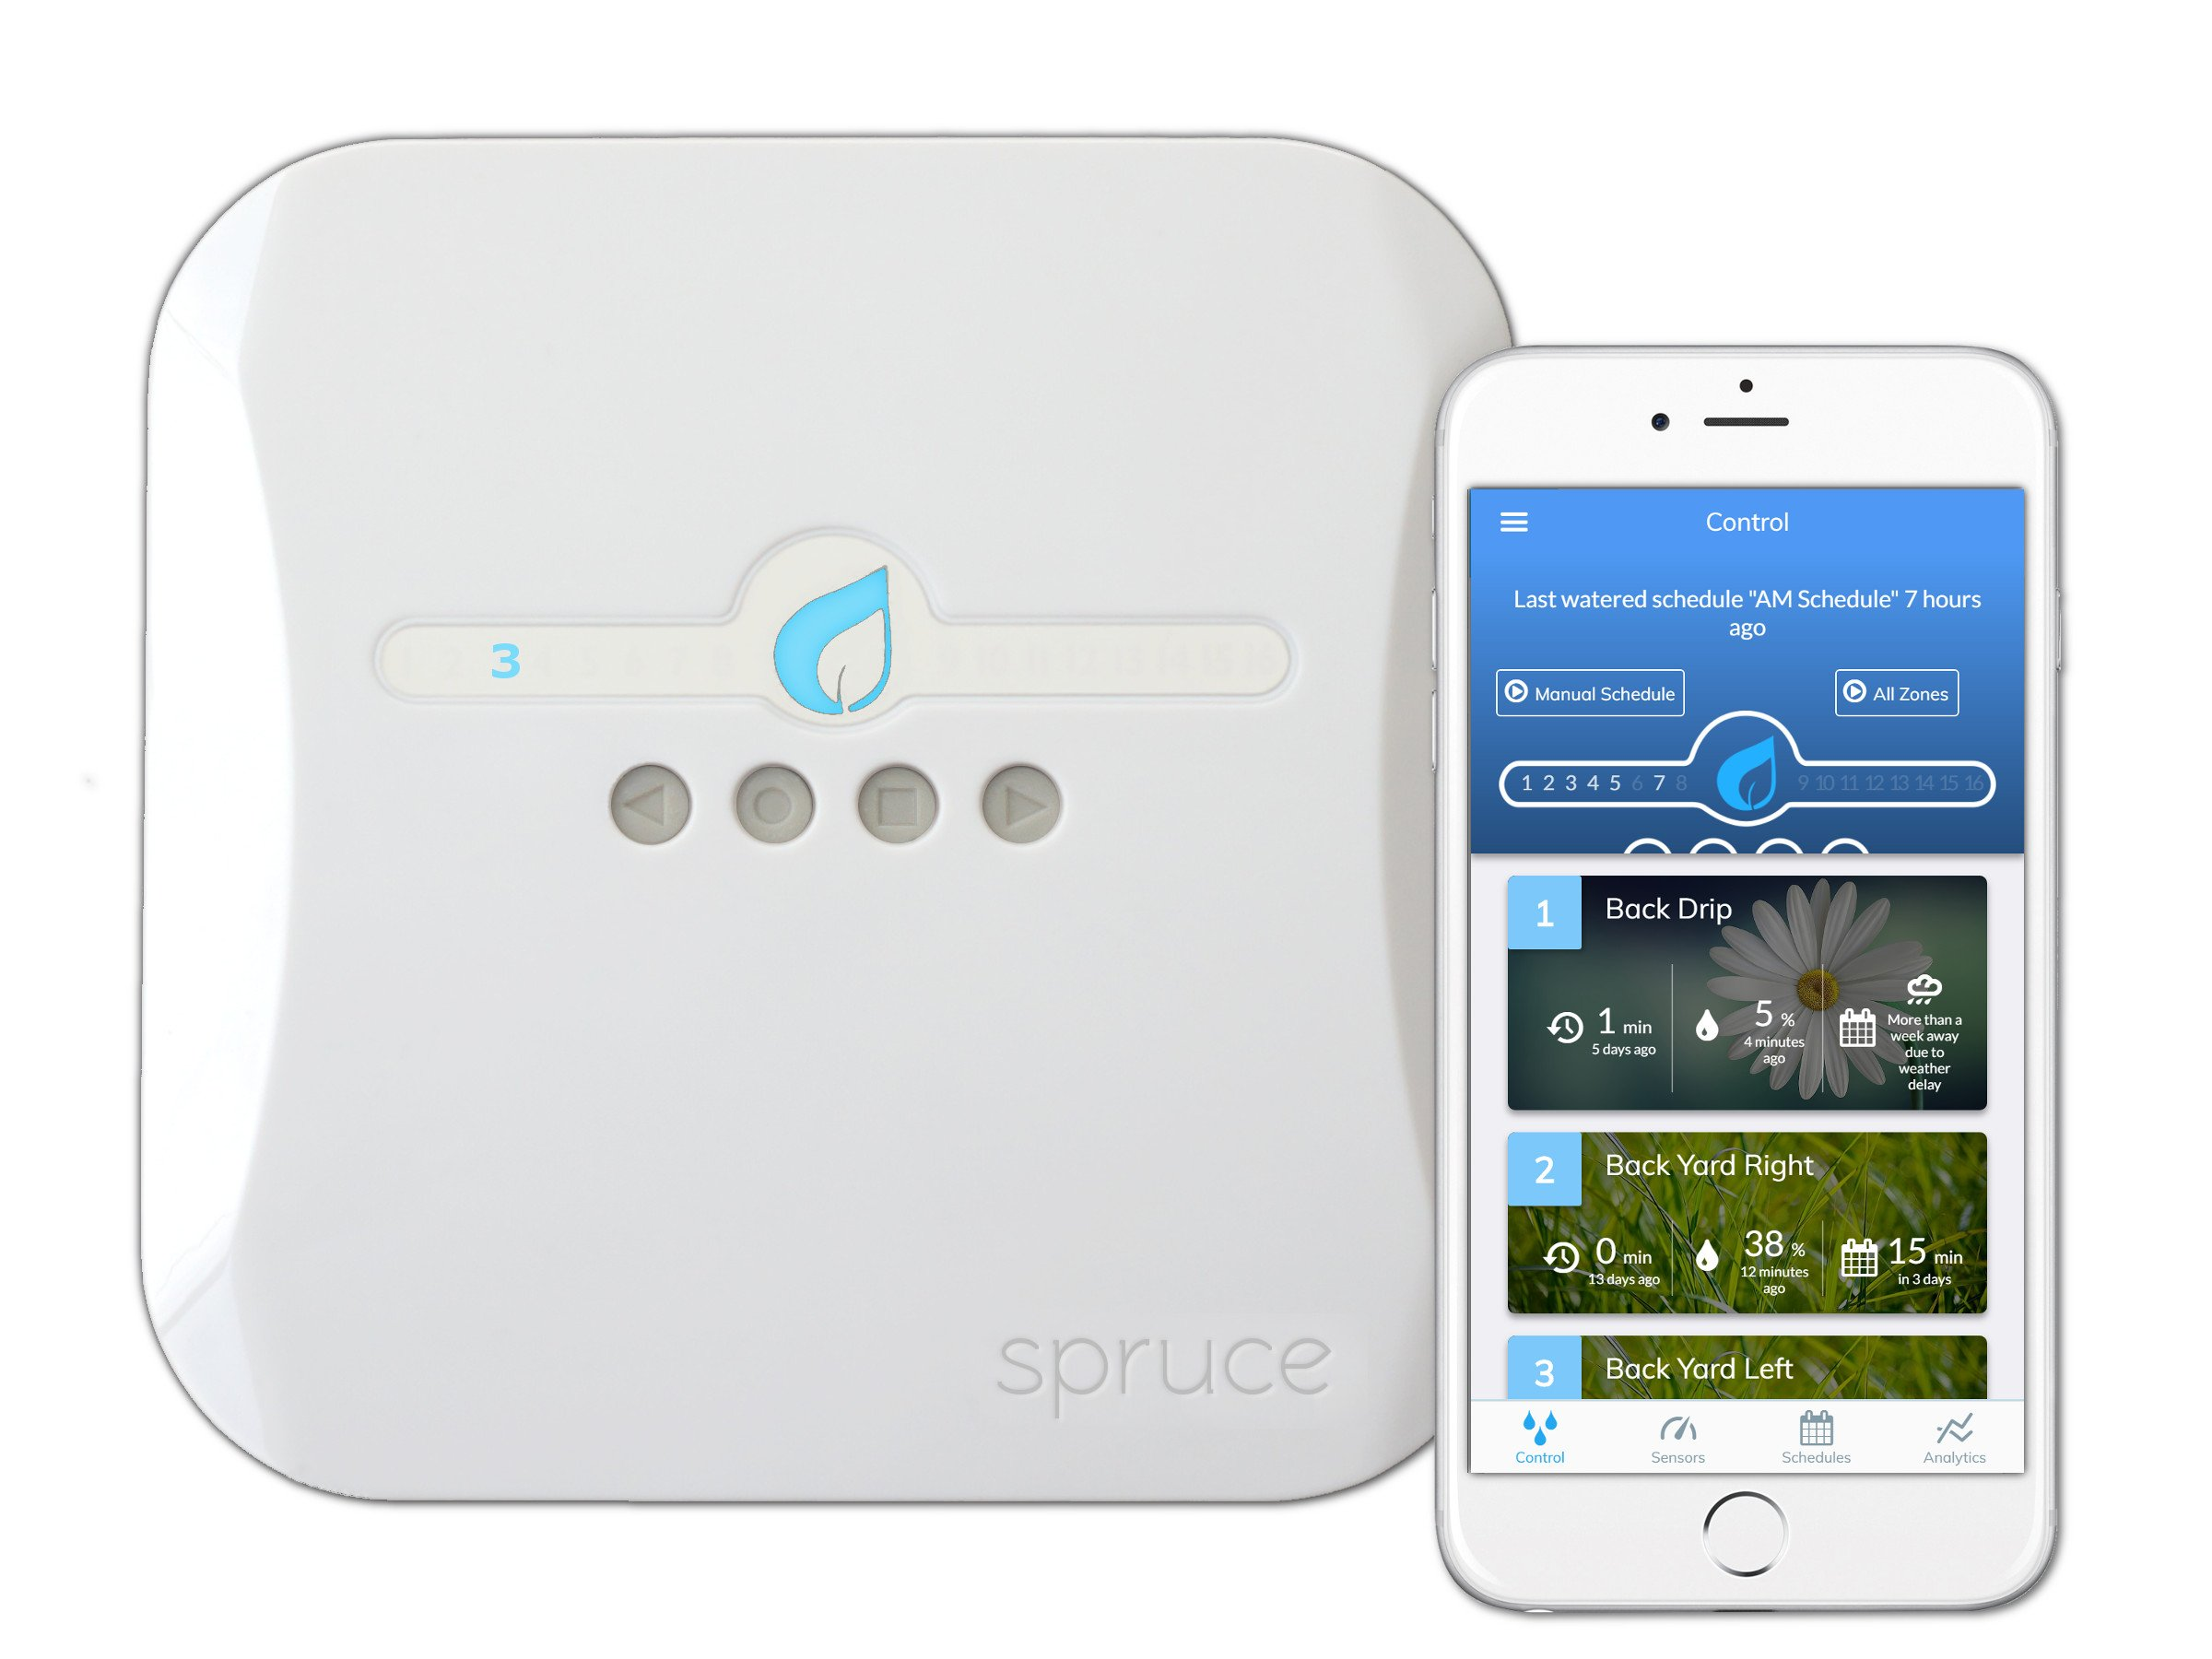 Spruce Irrigation 16 Zone Smart Wifi Controller (Gen 2), Compatible with Alexa